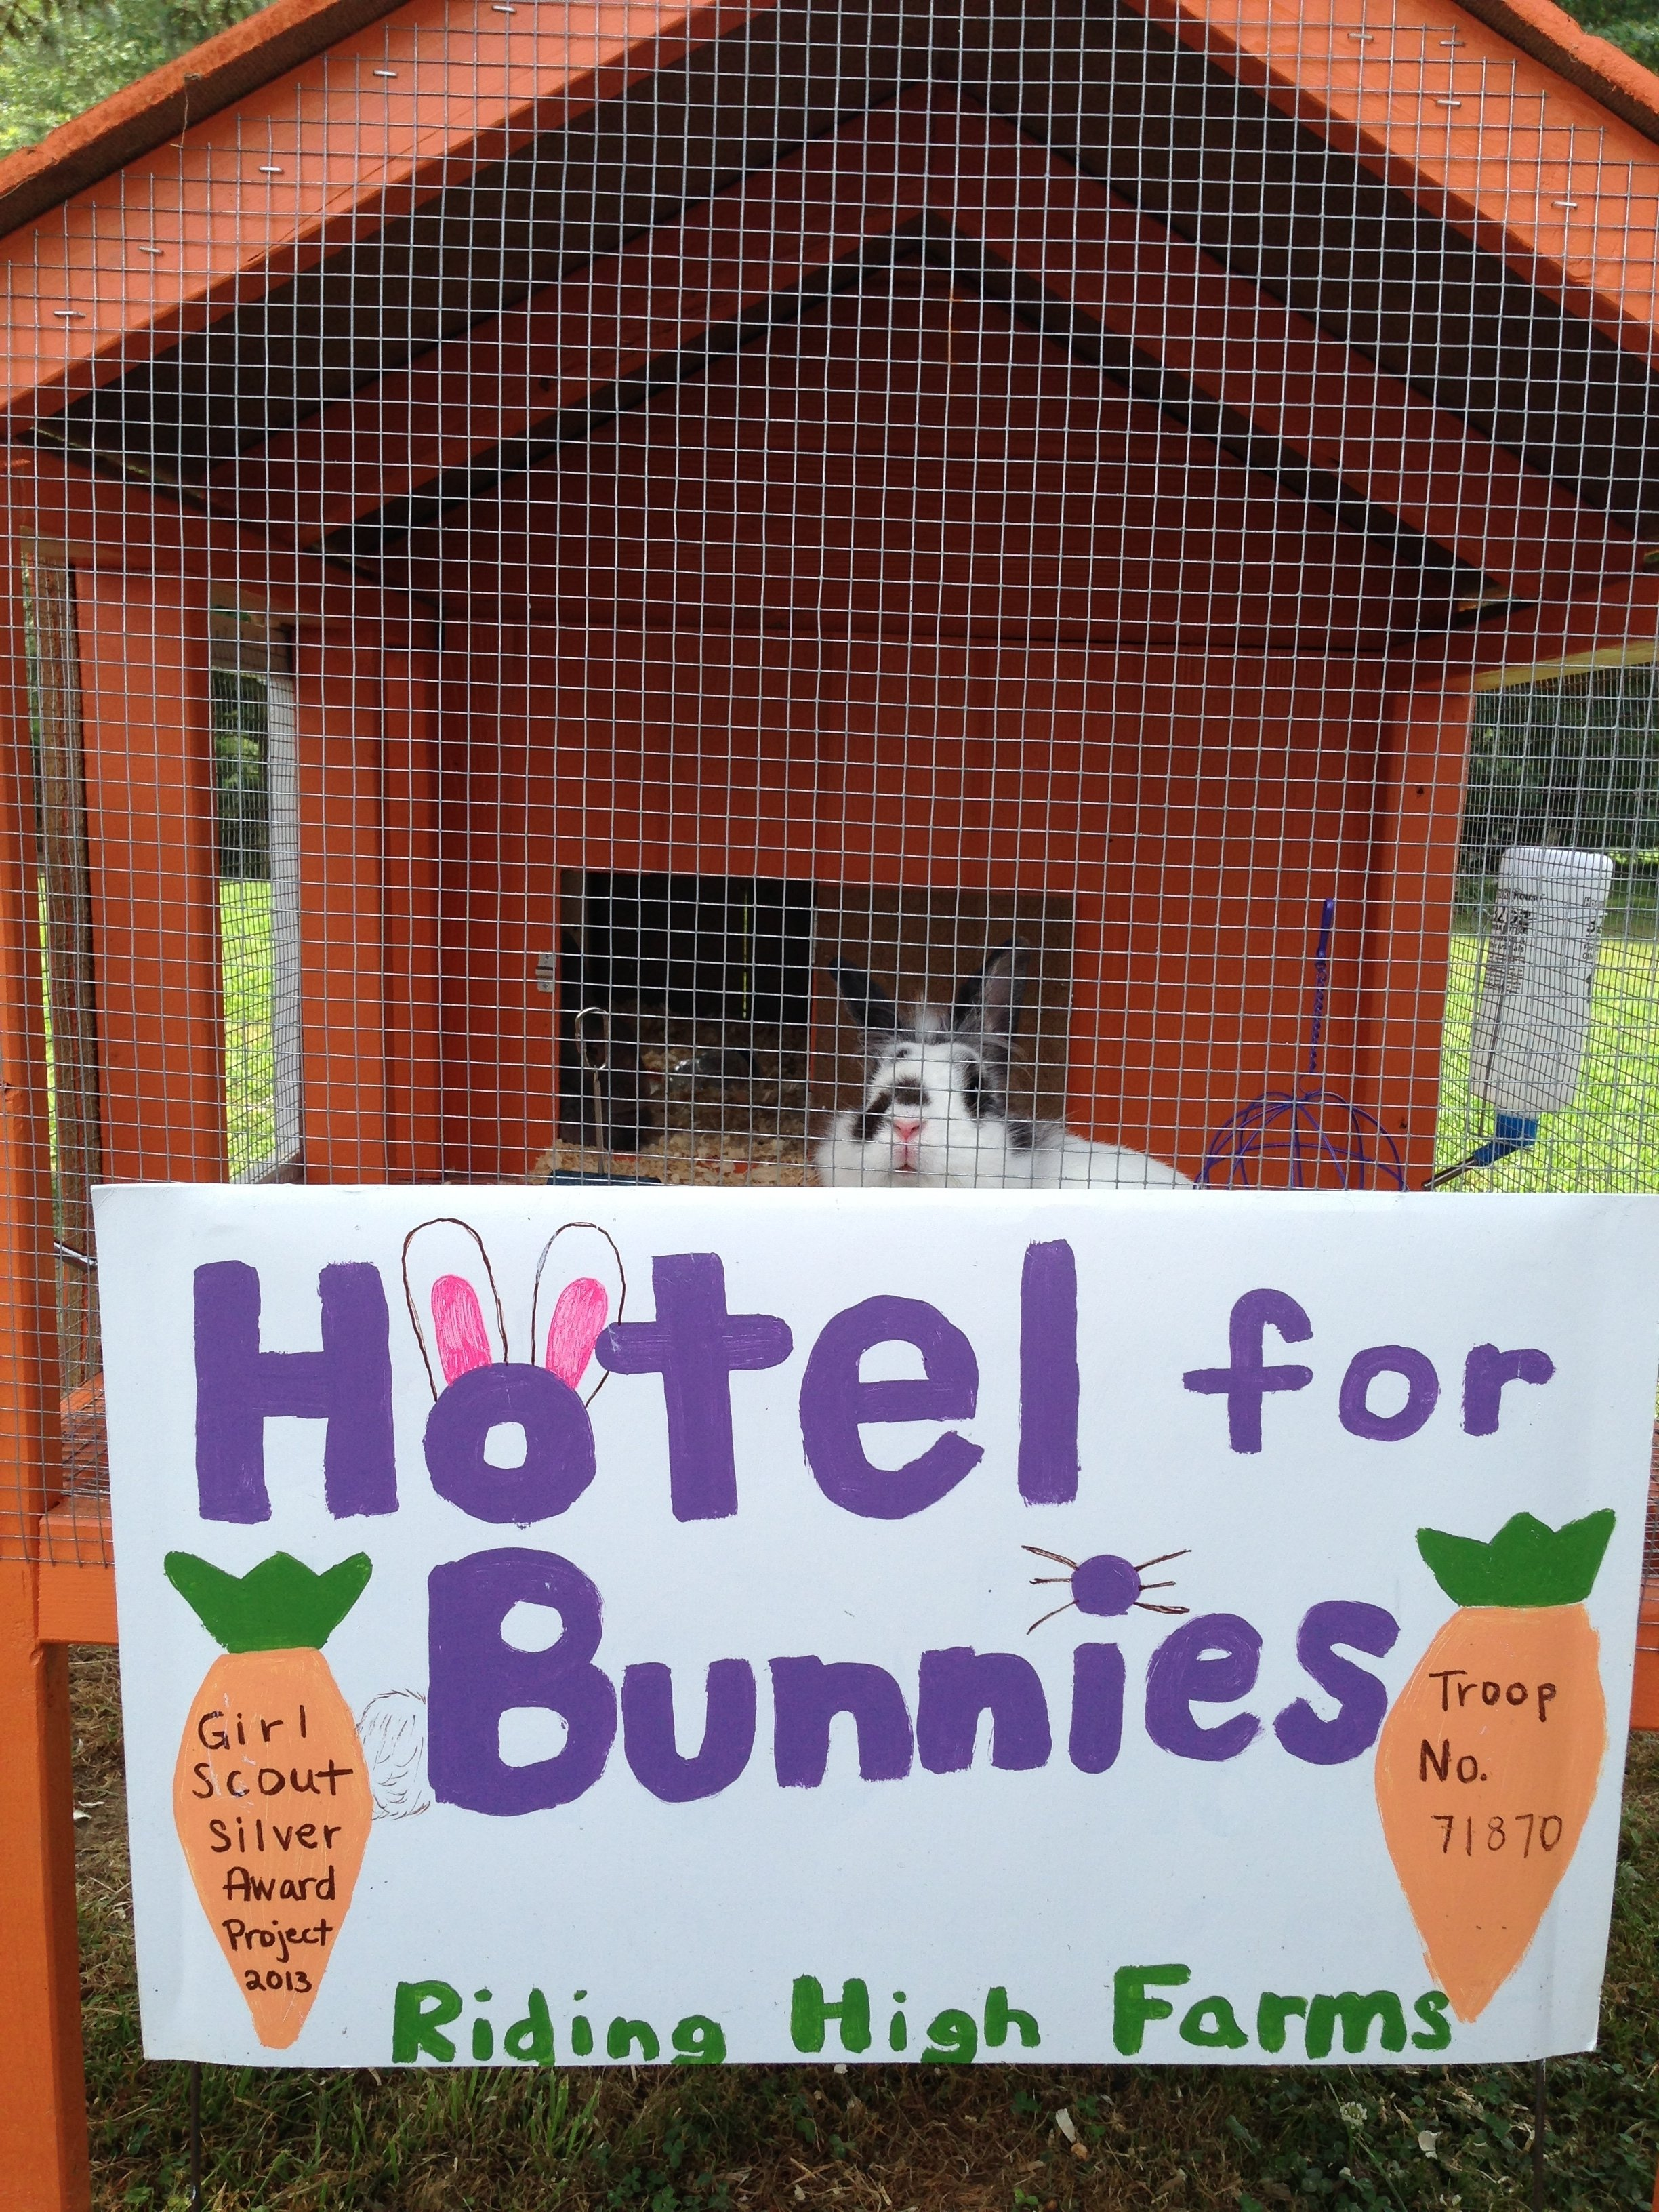 10 Fantastic Girl Scout Silver Award Ideas hotel for bunnies a safe haven for our fluffy friends 2 2020